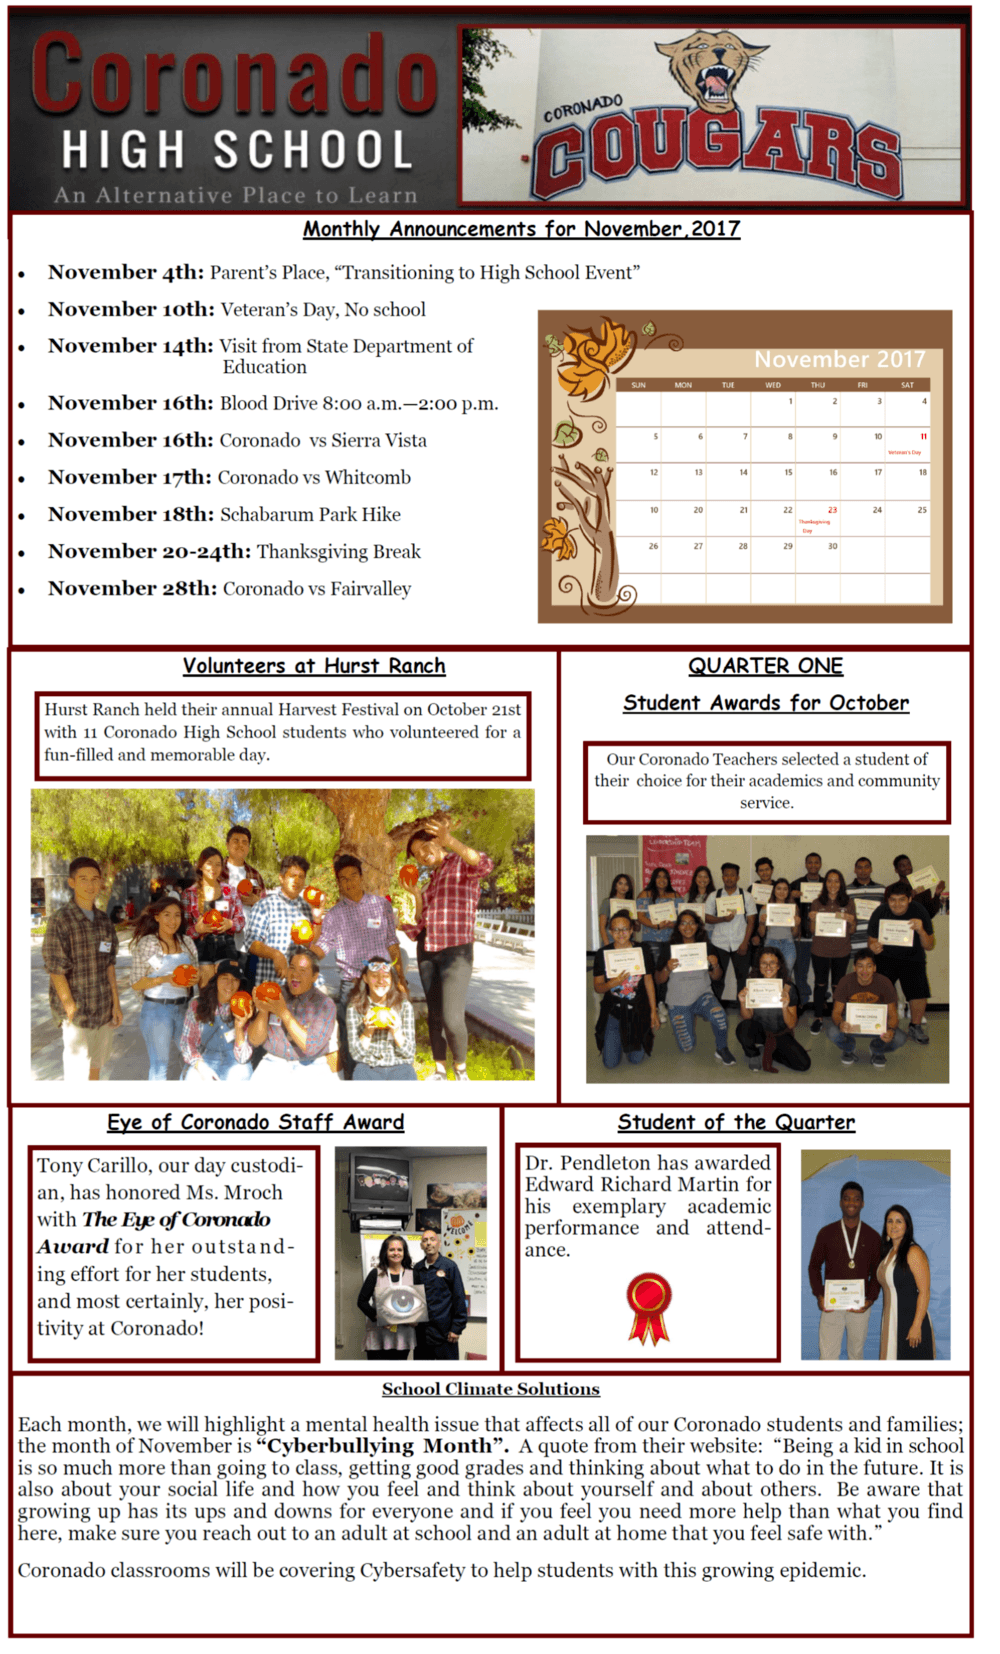 Newsletter for the month at Coronado HS